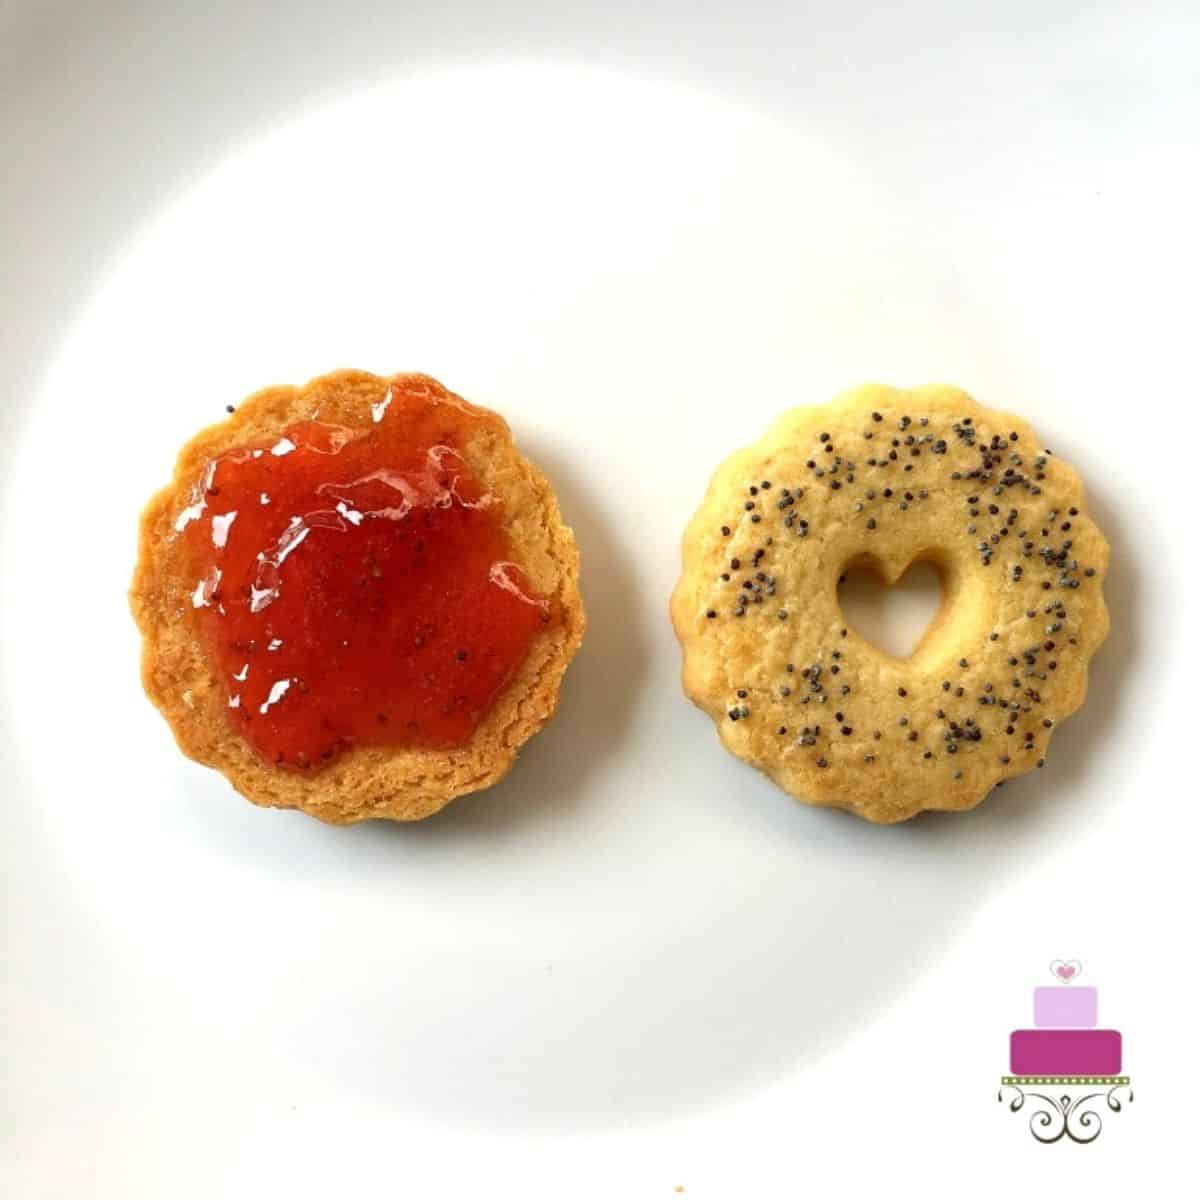 A round cookie with jam on top. At the side is a round cookie with heart shaped hole in the center.